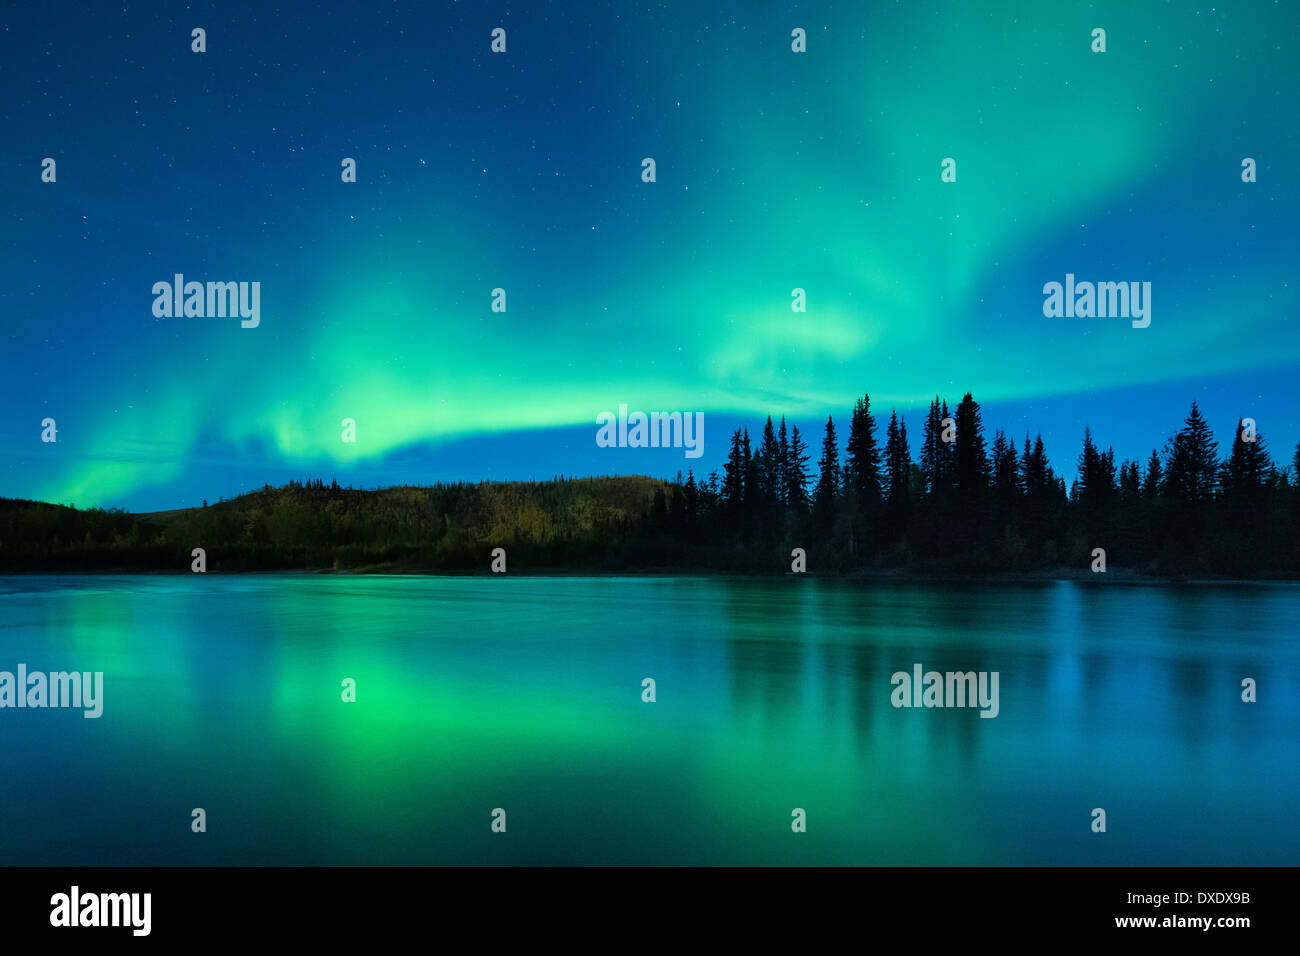 The Aurora Borealis (Northern Lights) over the Klondike River, Yukon Territories, Canada - Stock Image